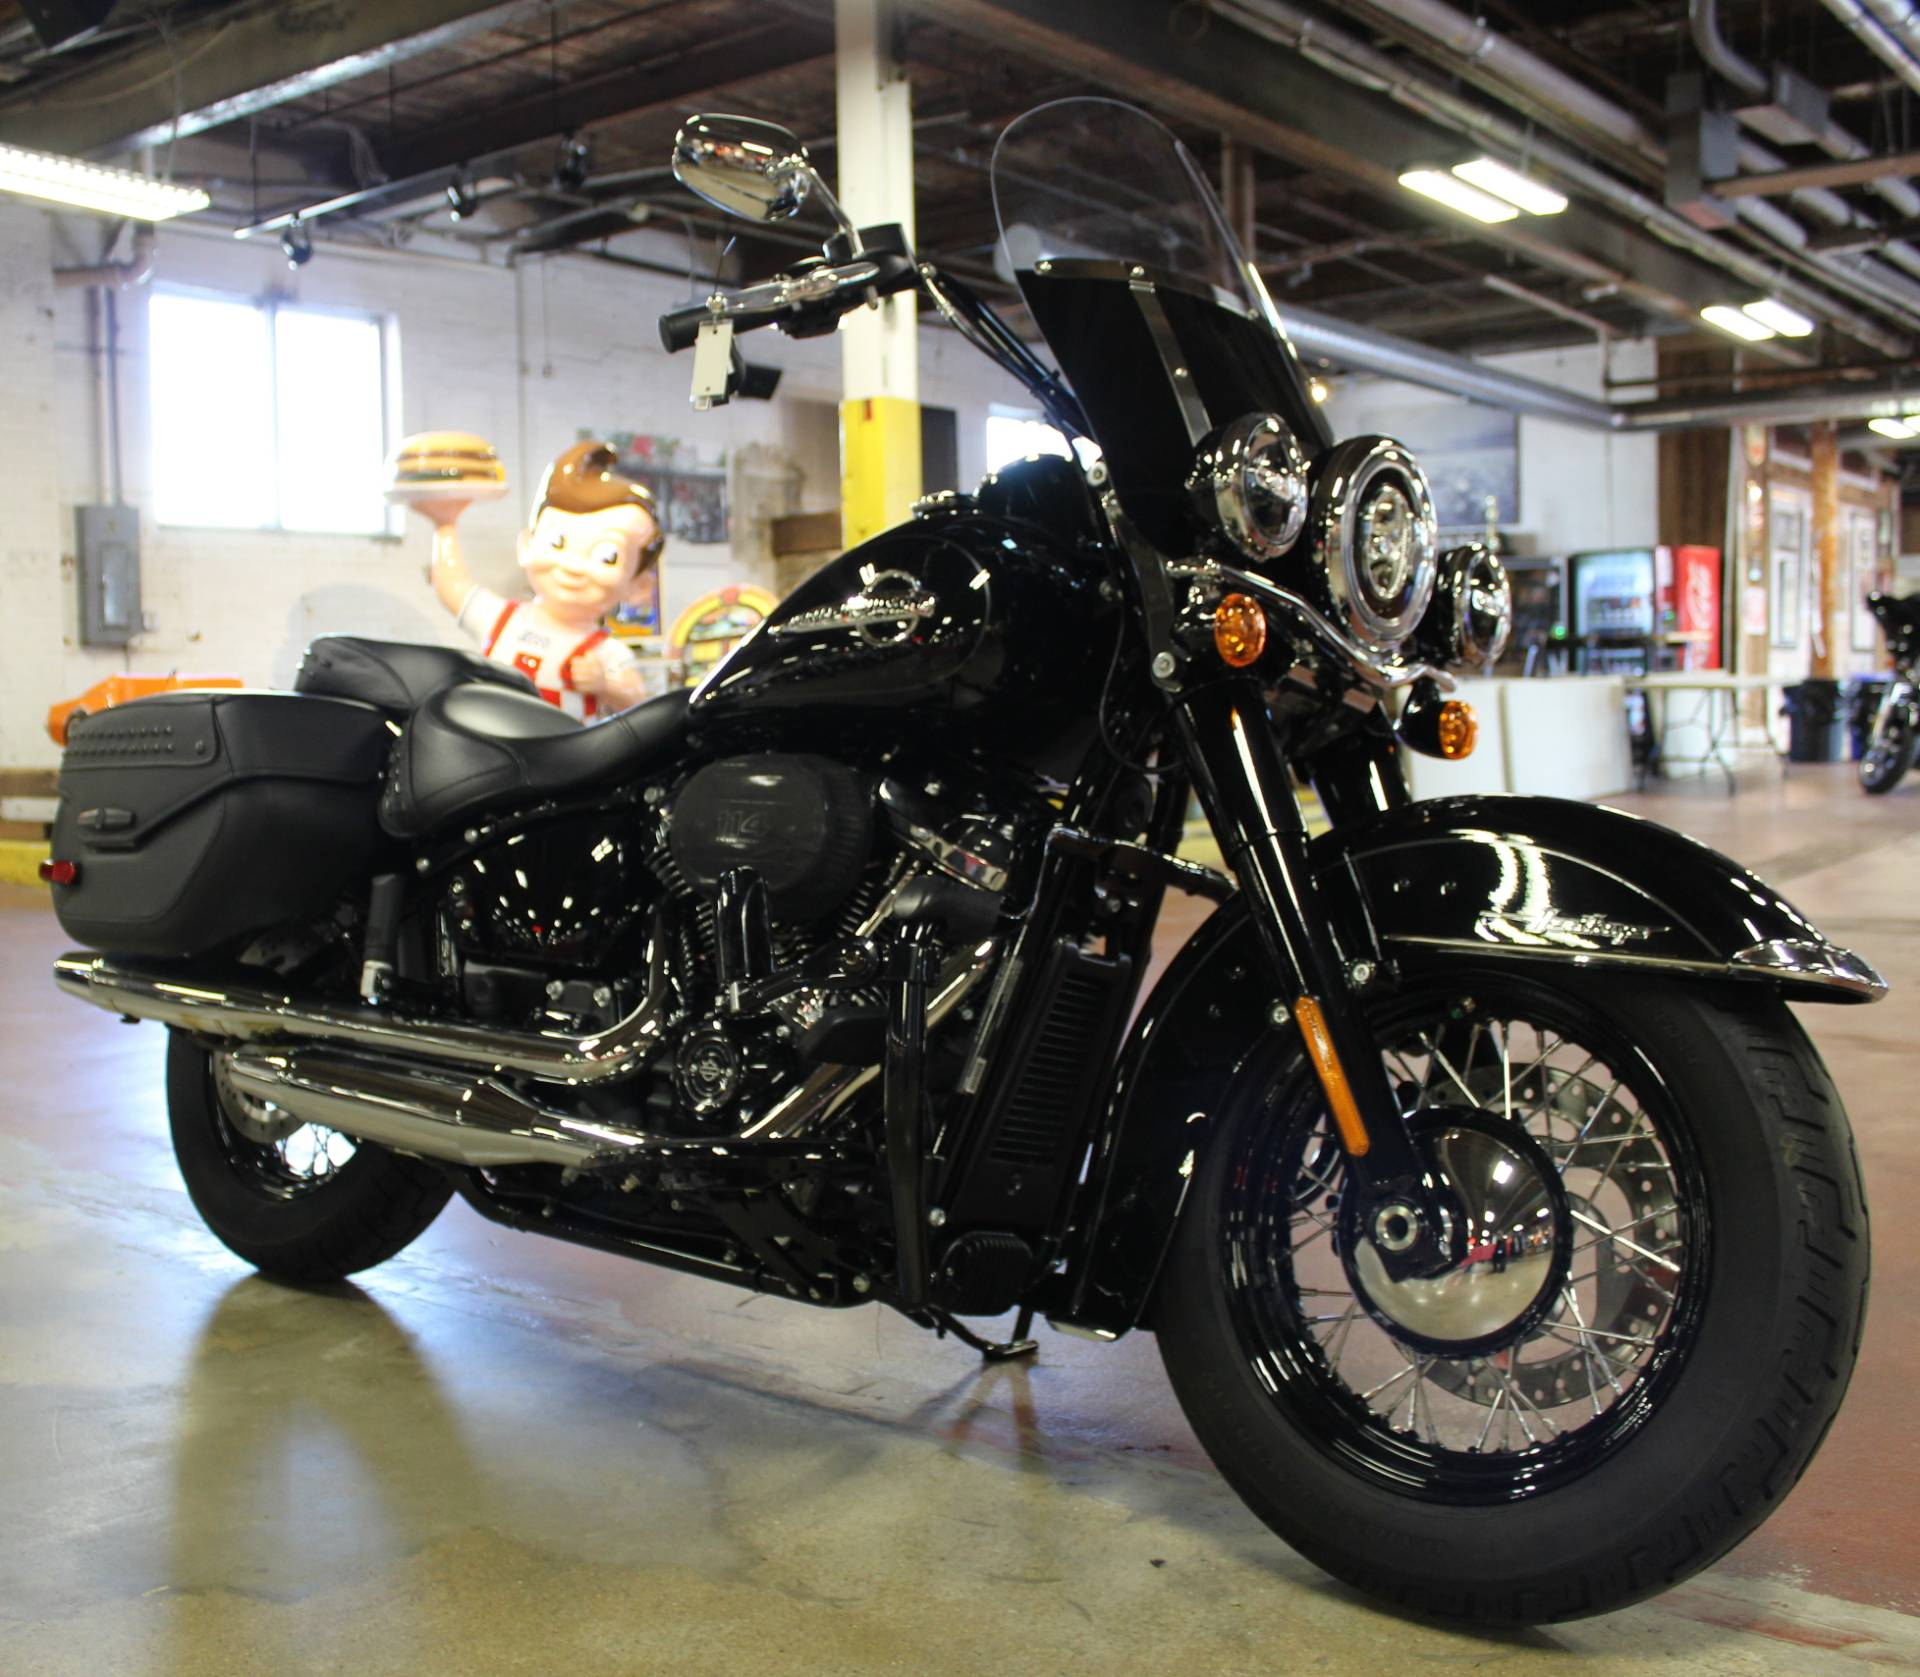 2019 Harley-Davidson Heritage Classic 114 in New London, Connecticut - Photo 2